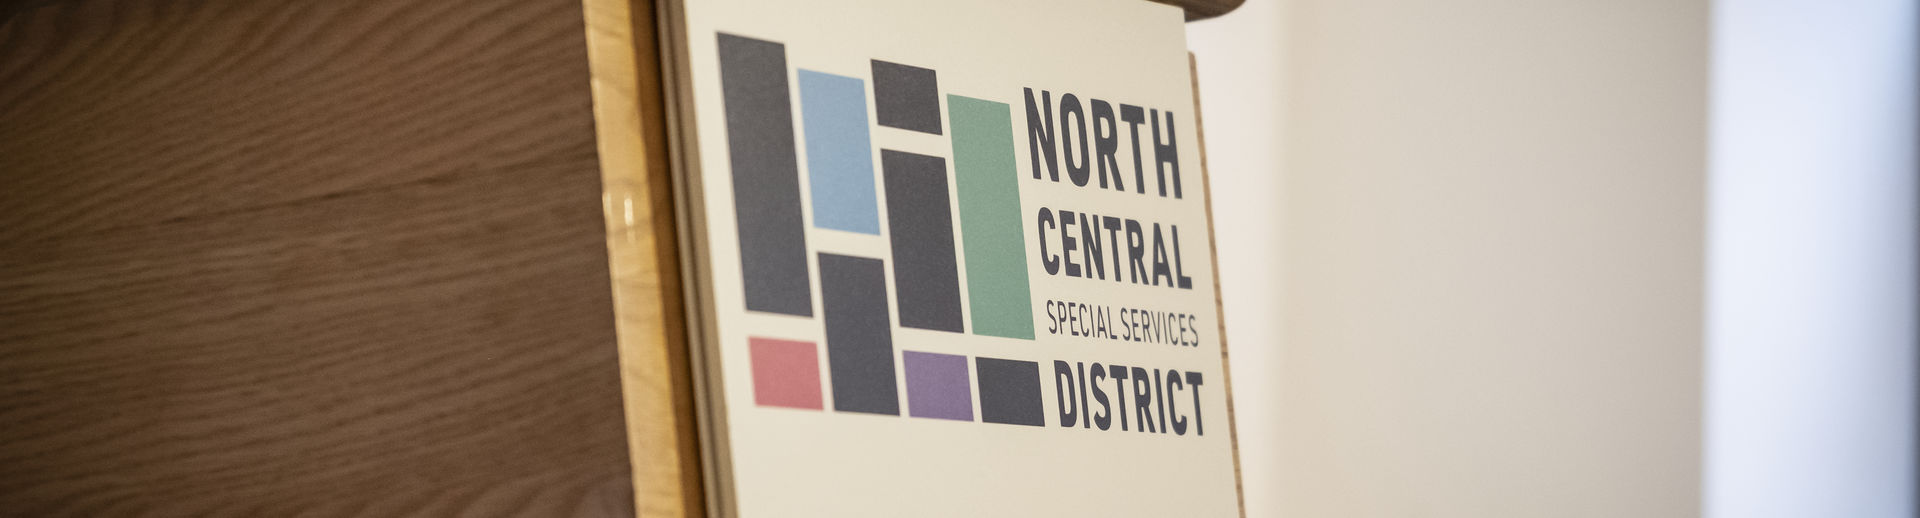 The North Central Special Services District signage on the front of a podium.